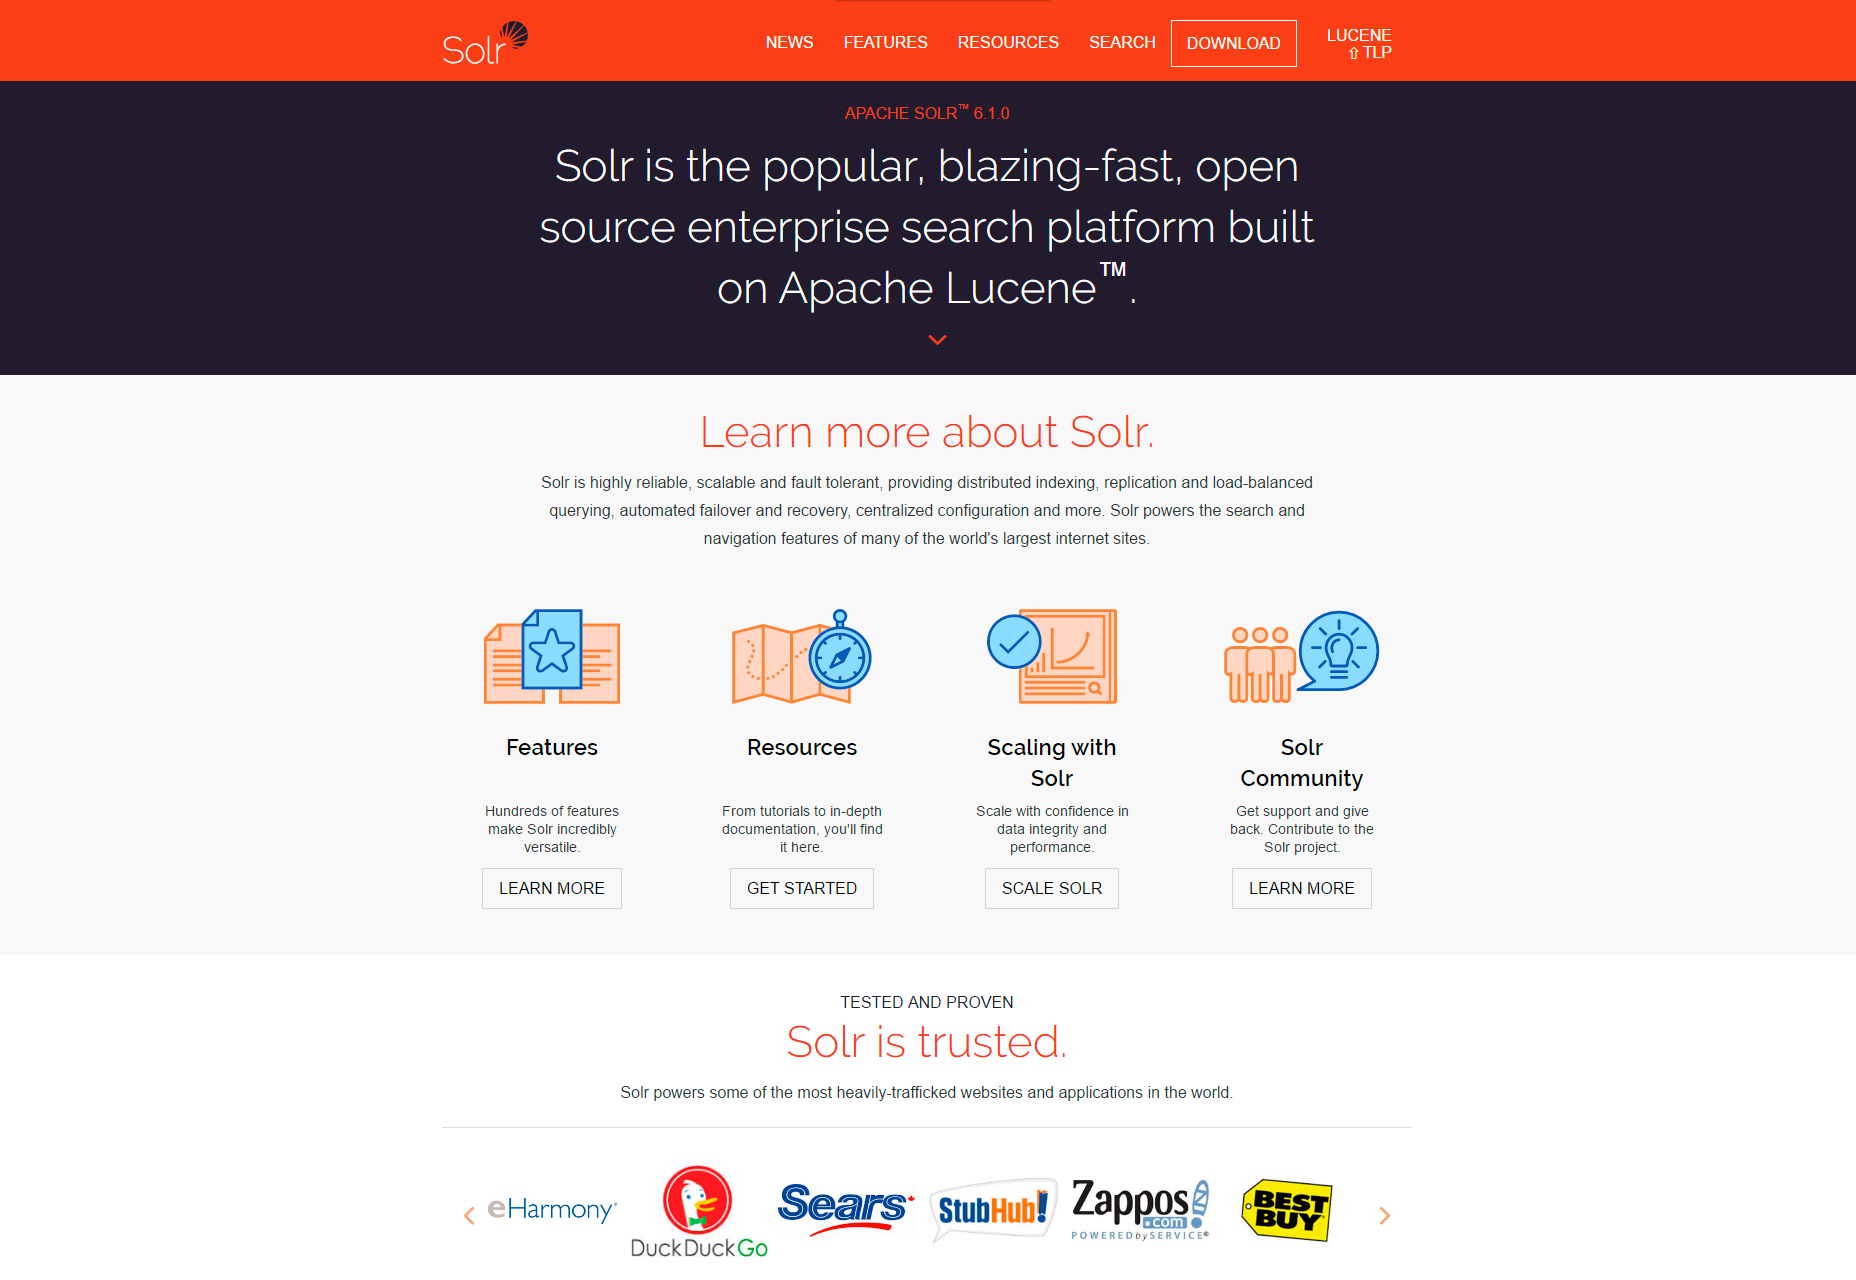 solr-open-source-enterprise-search-platform